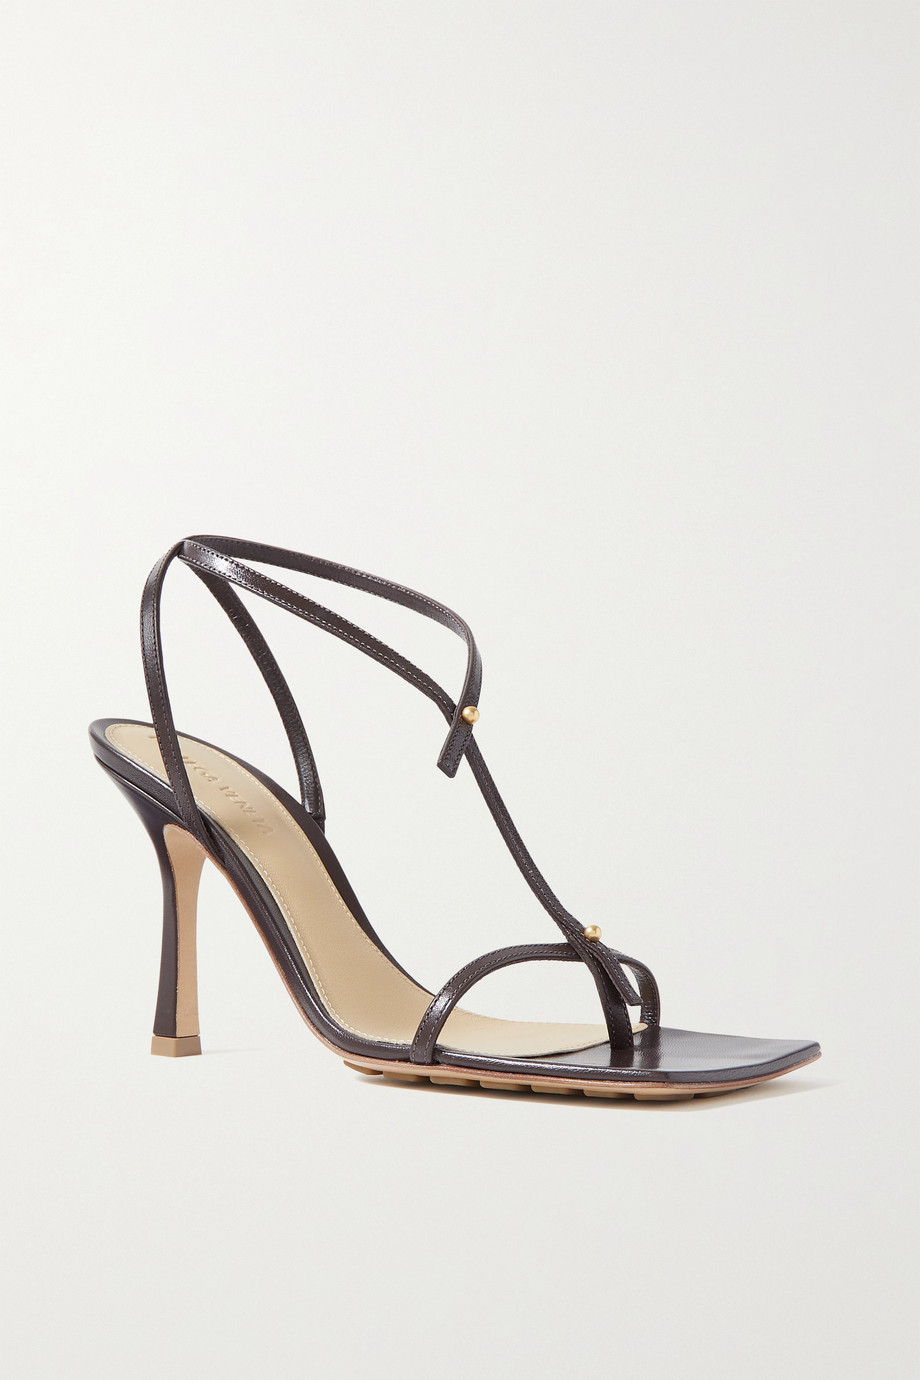 BOTTEGA VENETA Studded leather sandals